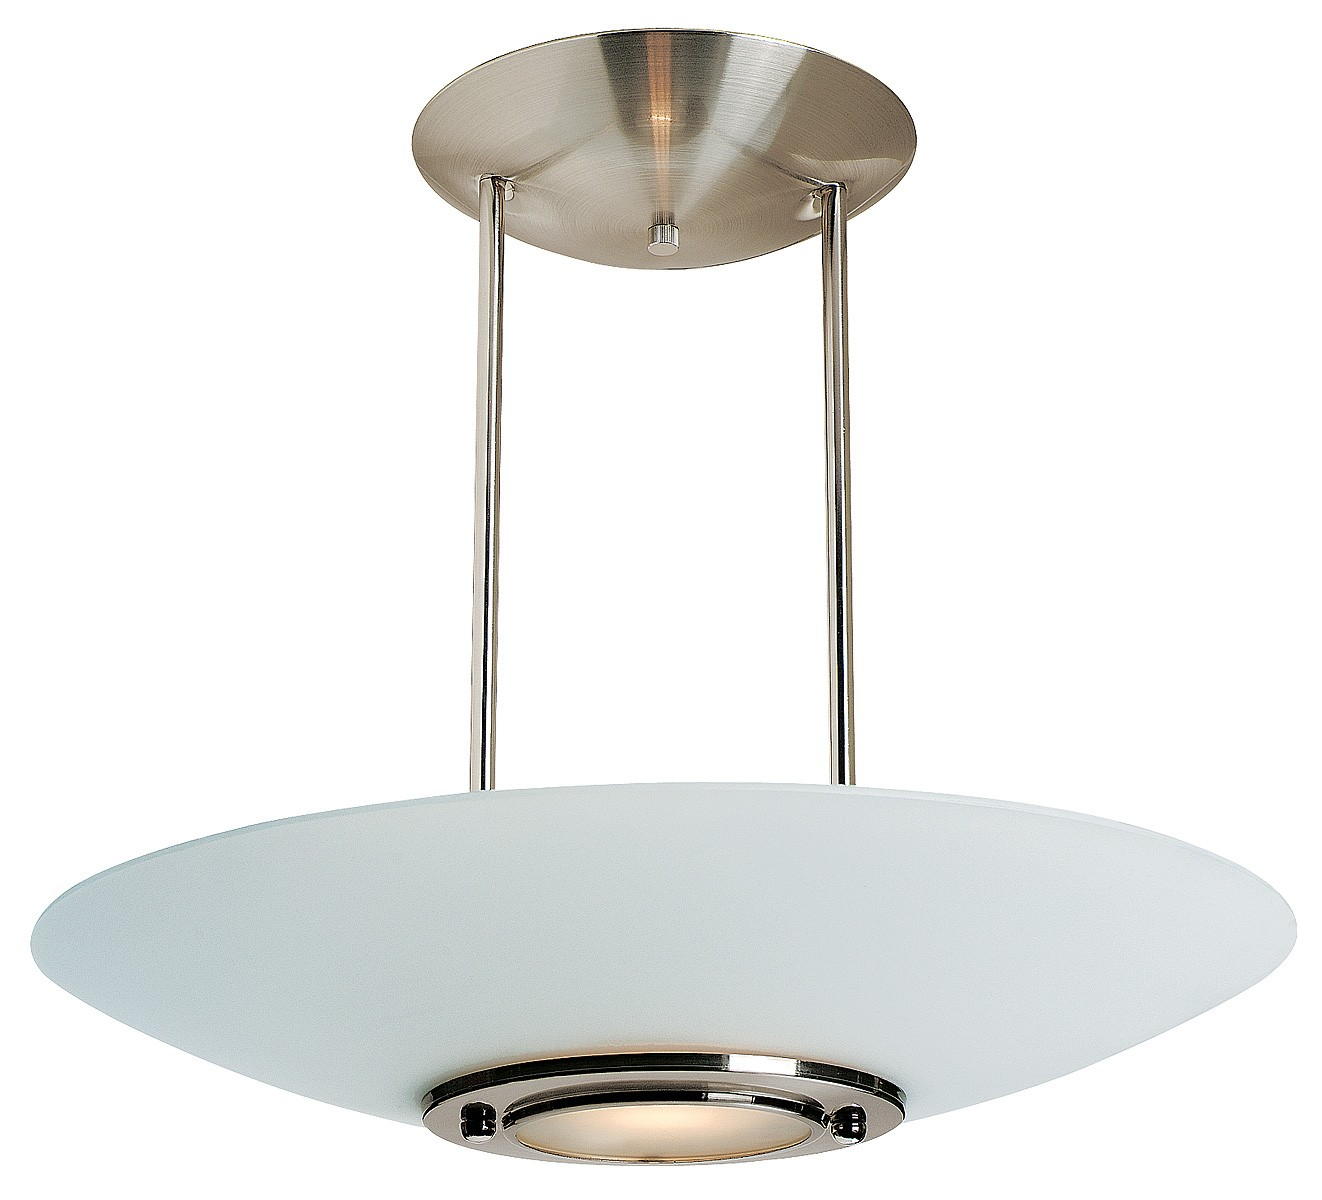 Access Lighting 50454bsfst Argon Semiflush Or Pendant. Wall Clocks Modern. Glass Top Dining Table. Relaxed Khaki. Barn Front Door. Bathroom Paint Colors. Multipanel Mirror. Battery Operated Lamps. Basketball Bedroom